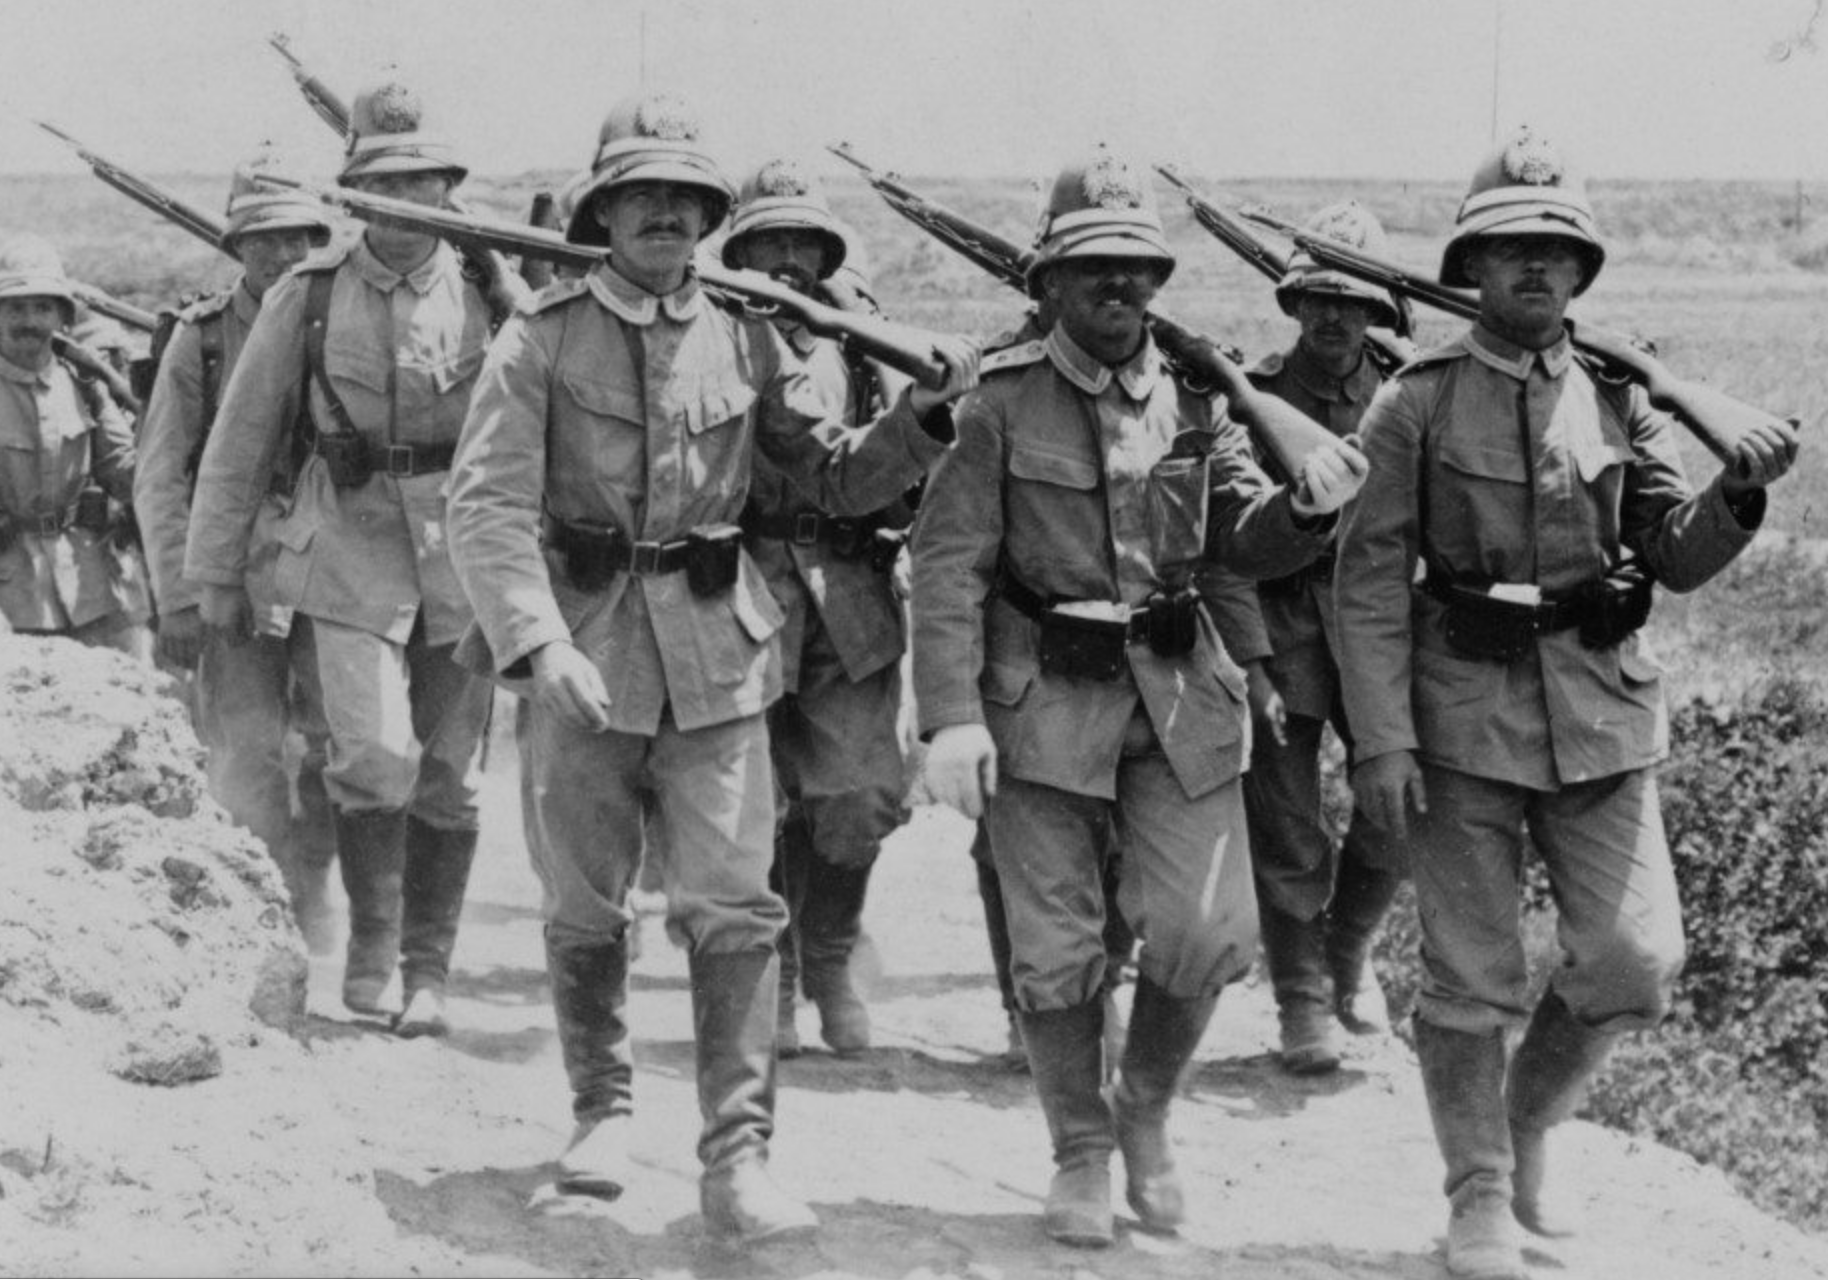 German soldiers marching with their Model 98 rifles near Beijing. (Image: wikimedia / CC0 1.0)